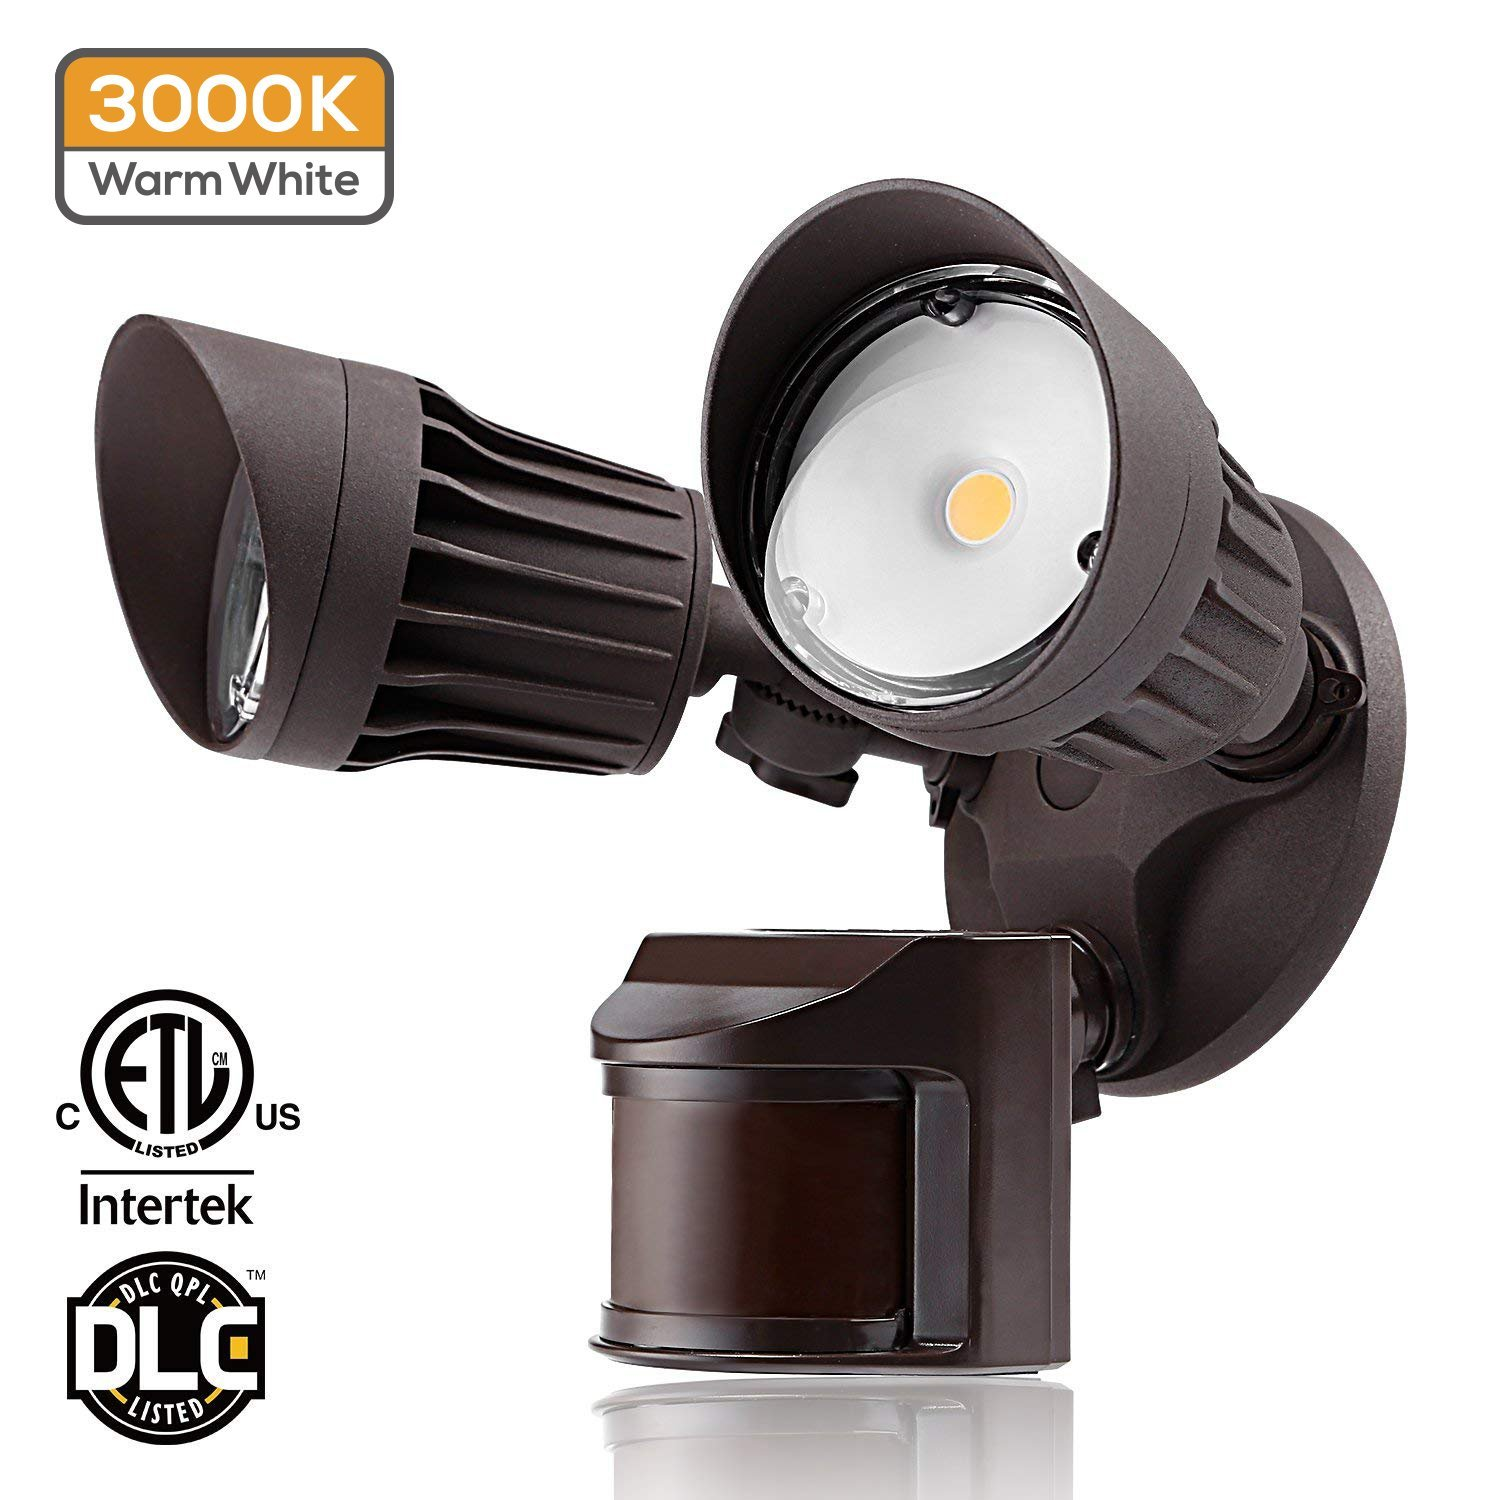 Dual-Head Motion Activated LED Outdoor Security Light, 20W (120W Equivalent), 3 Work Modes with Photo Sensor, 1600Lm Floodlight for Porch, Stairs, 3000K Warm White, Bronze